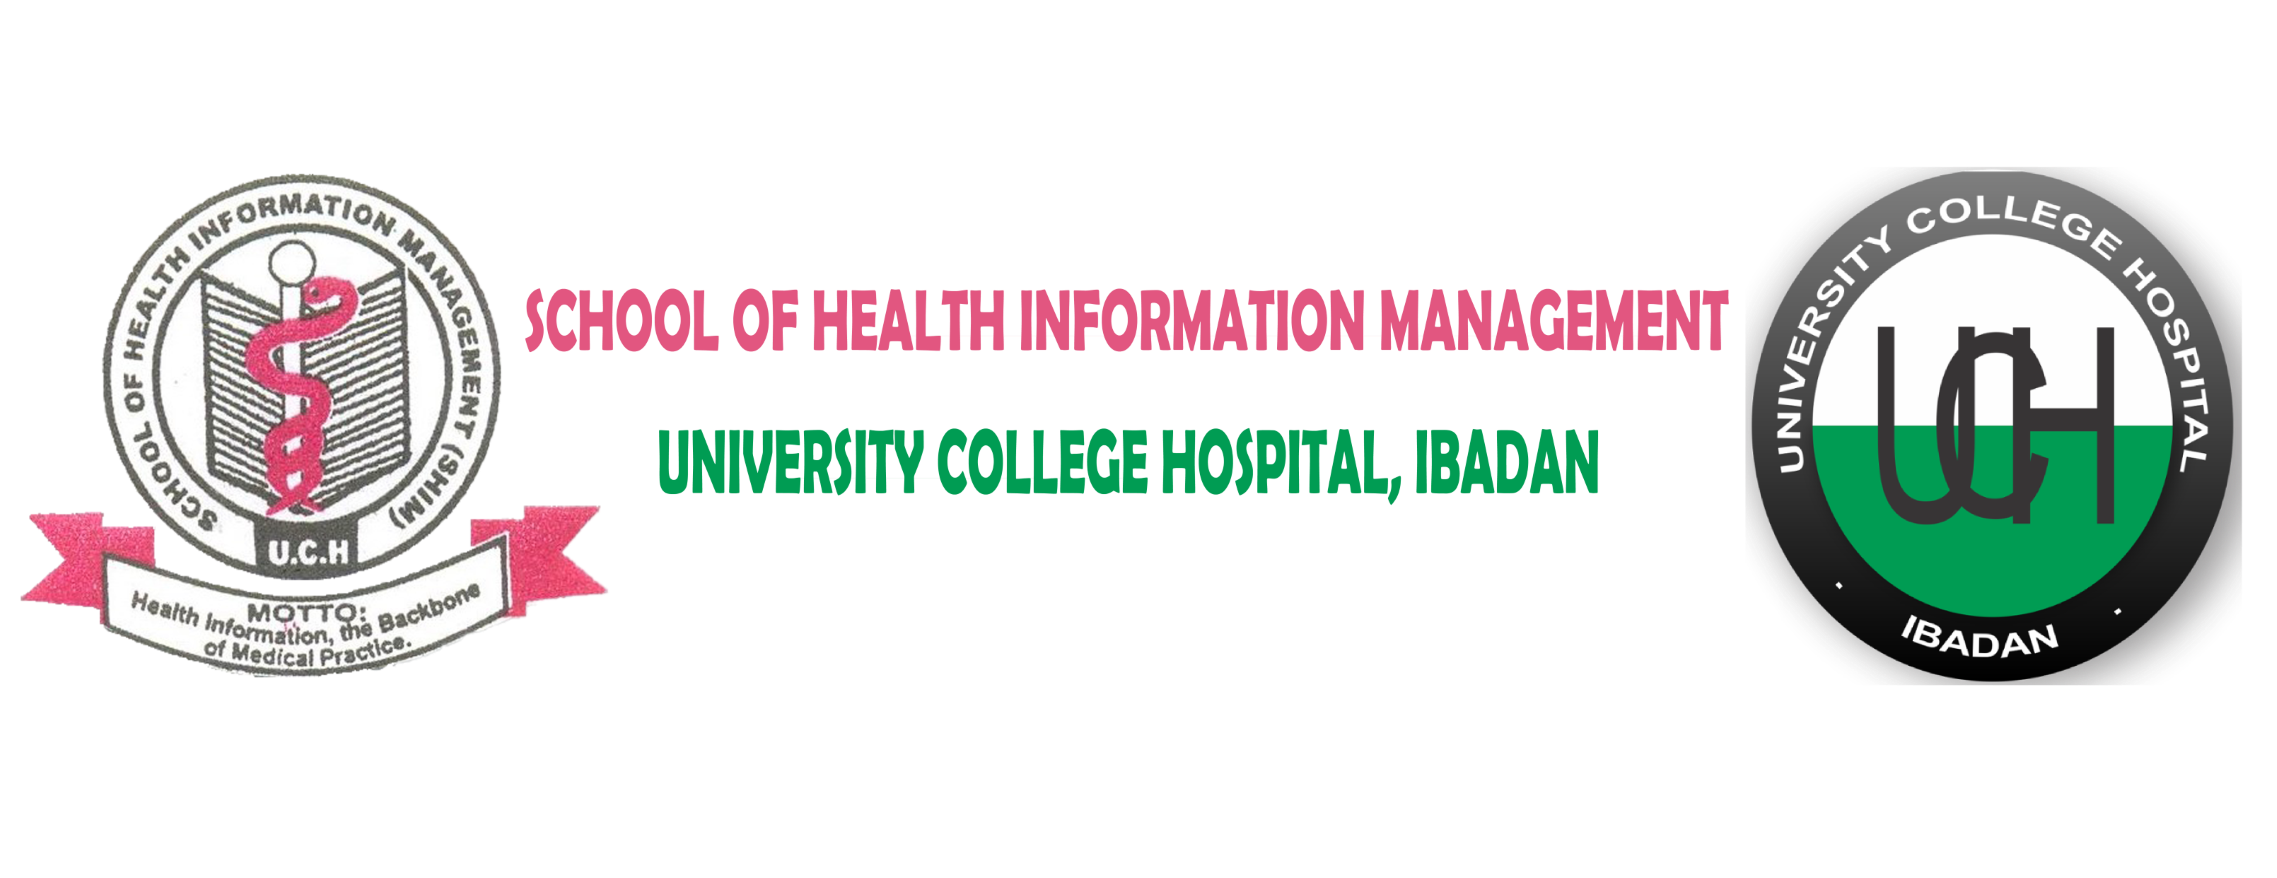 SHIM - School of Health Information Management, UCH, Ibadan